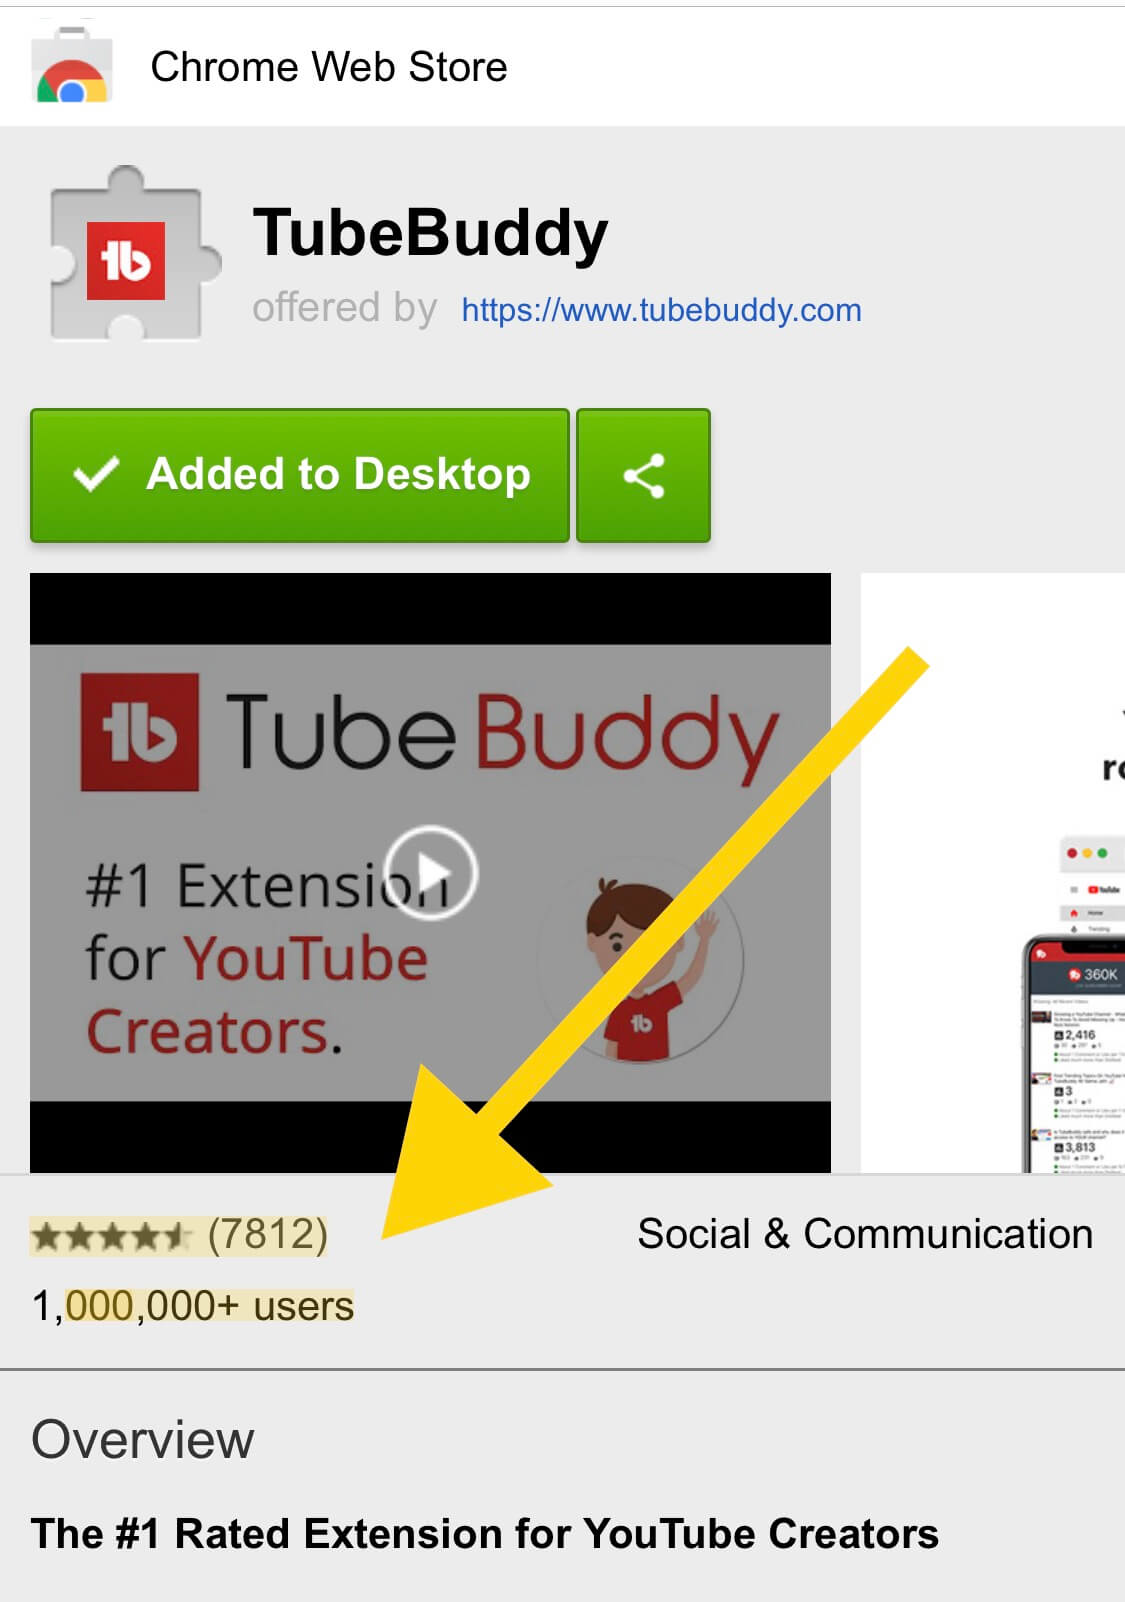 TubeBuddy Total Users